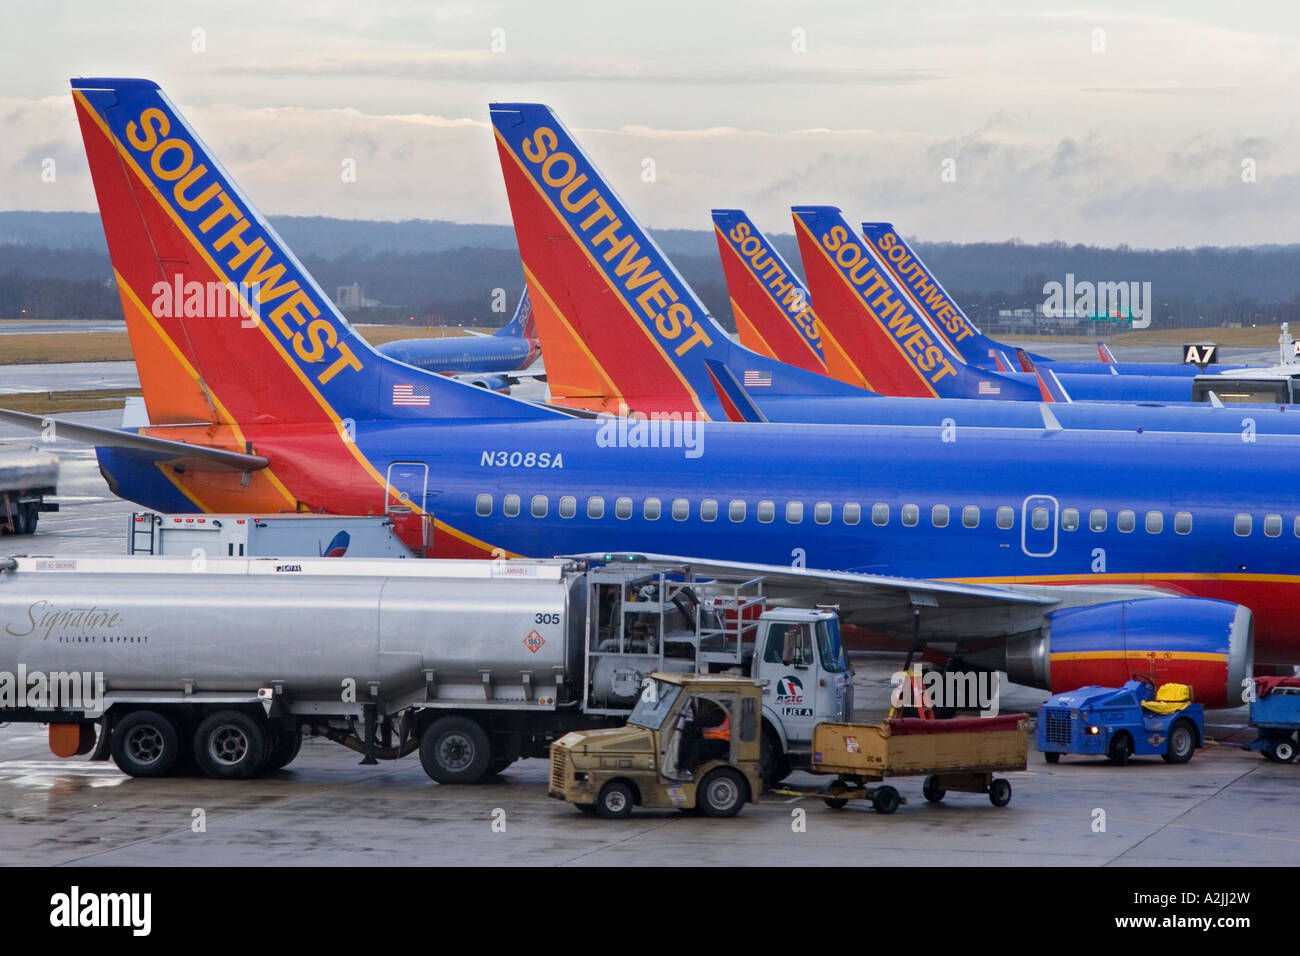 Southwest airlines stock photos southwest airlines stock images baltimore maryland southwest airlines planes on the ground at baltimore washington international airport stock image buycottarizona